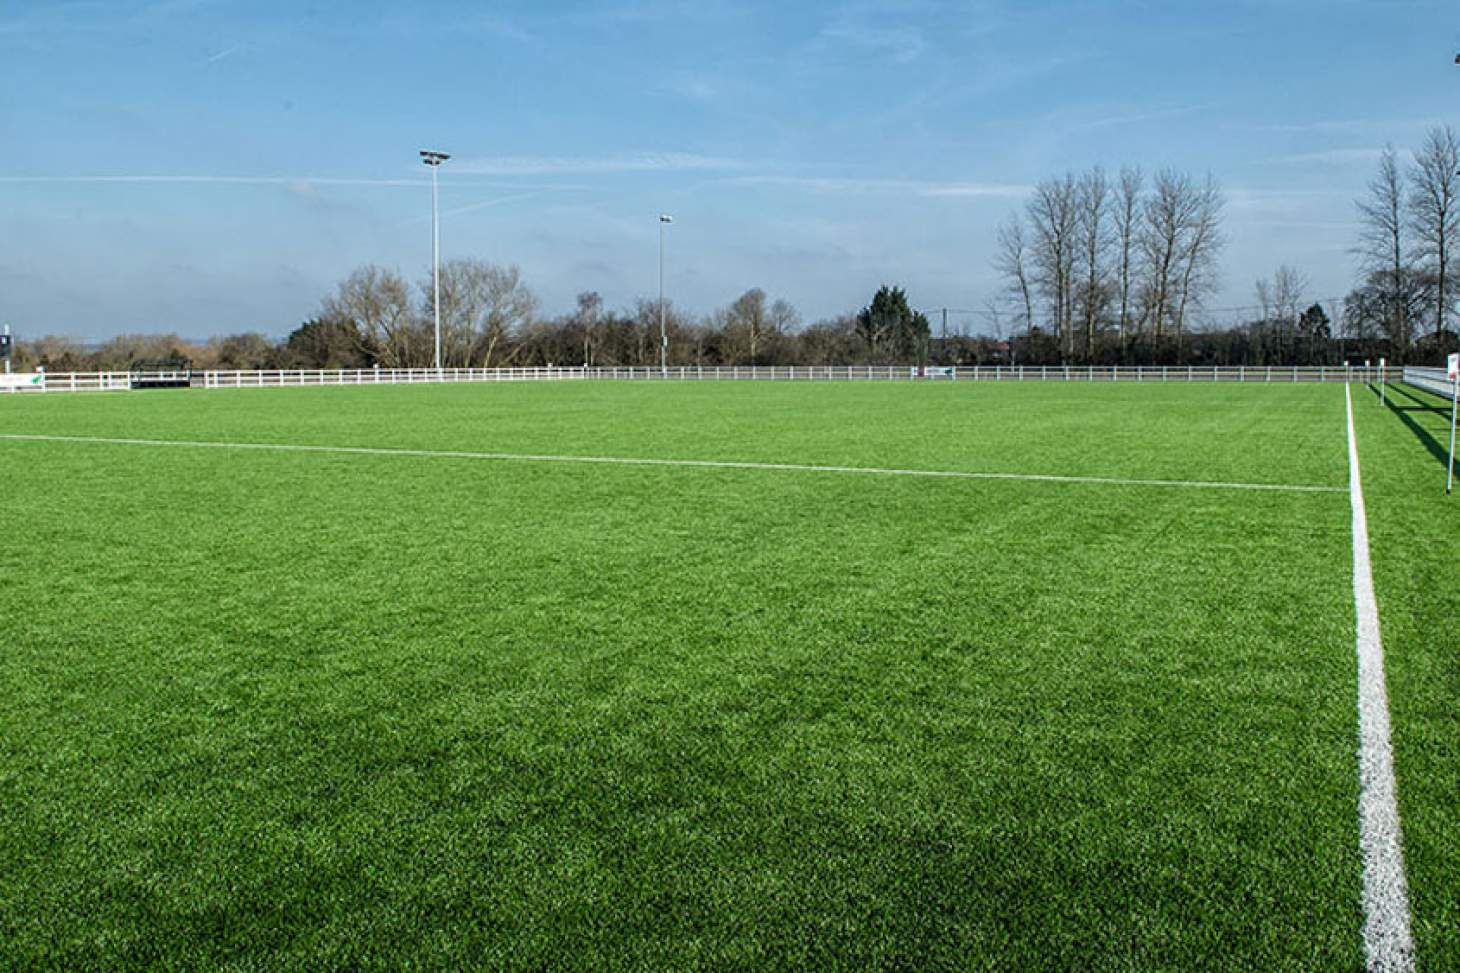 PlayFootball Cambridge Shelford 8 a side | 3G Astroturf football pitch